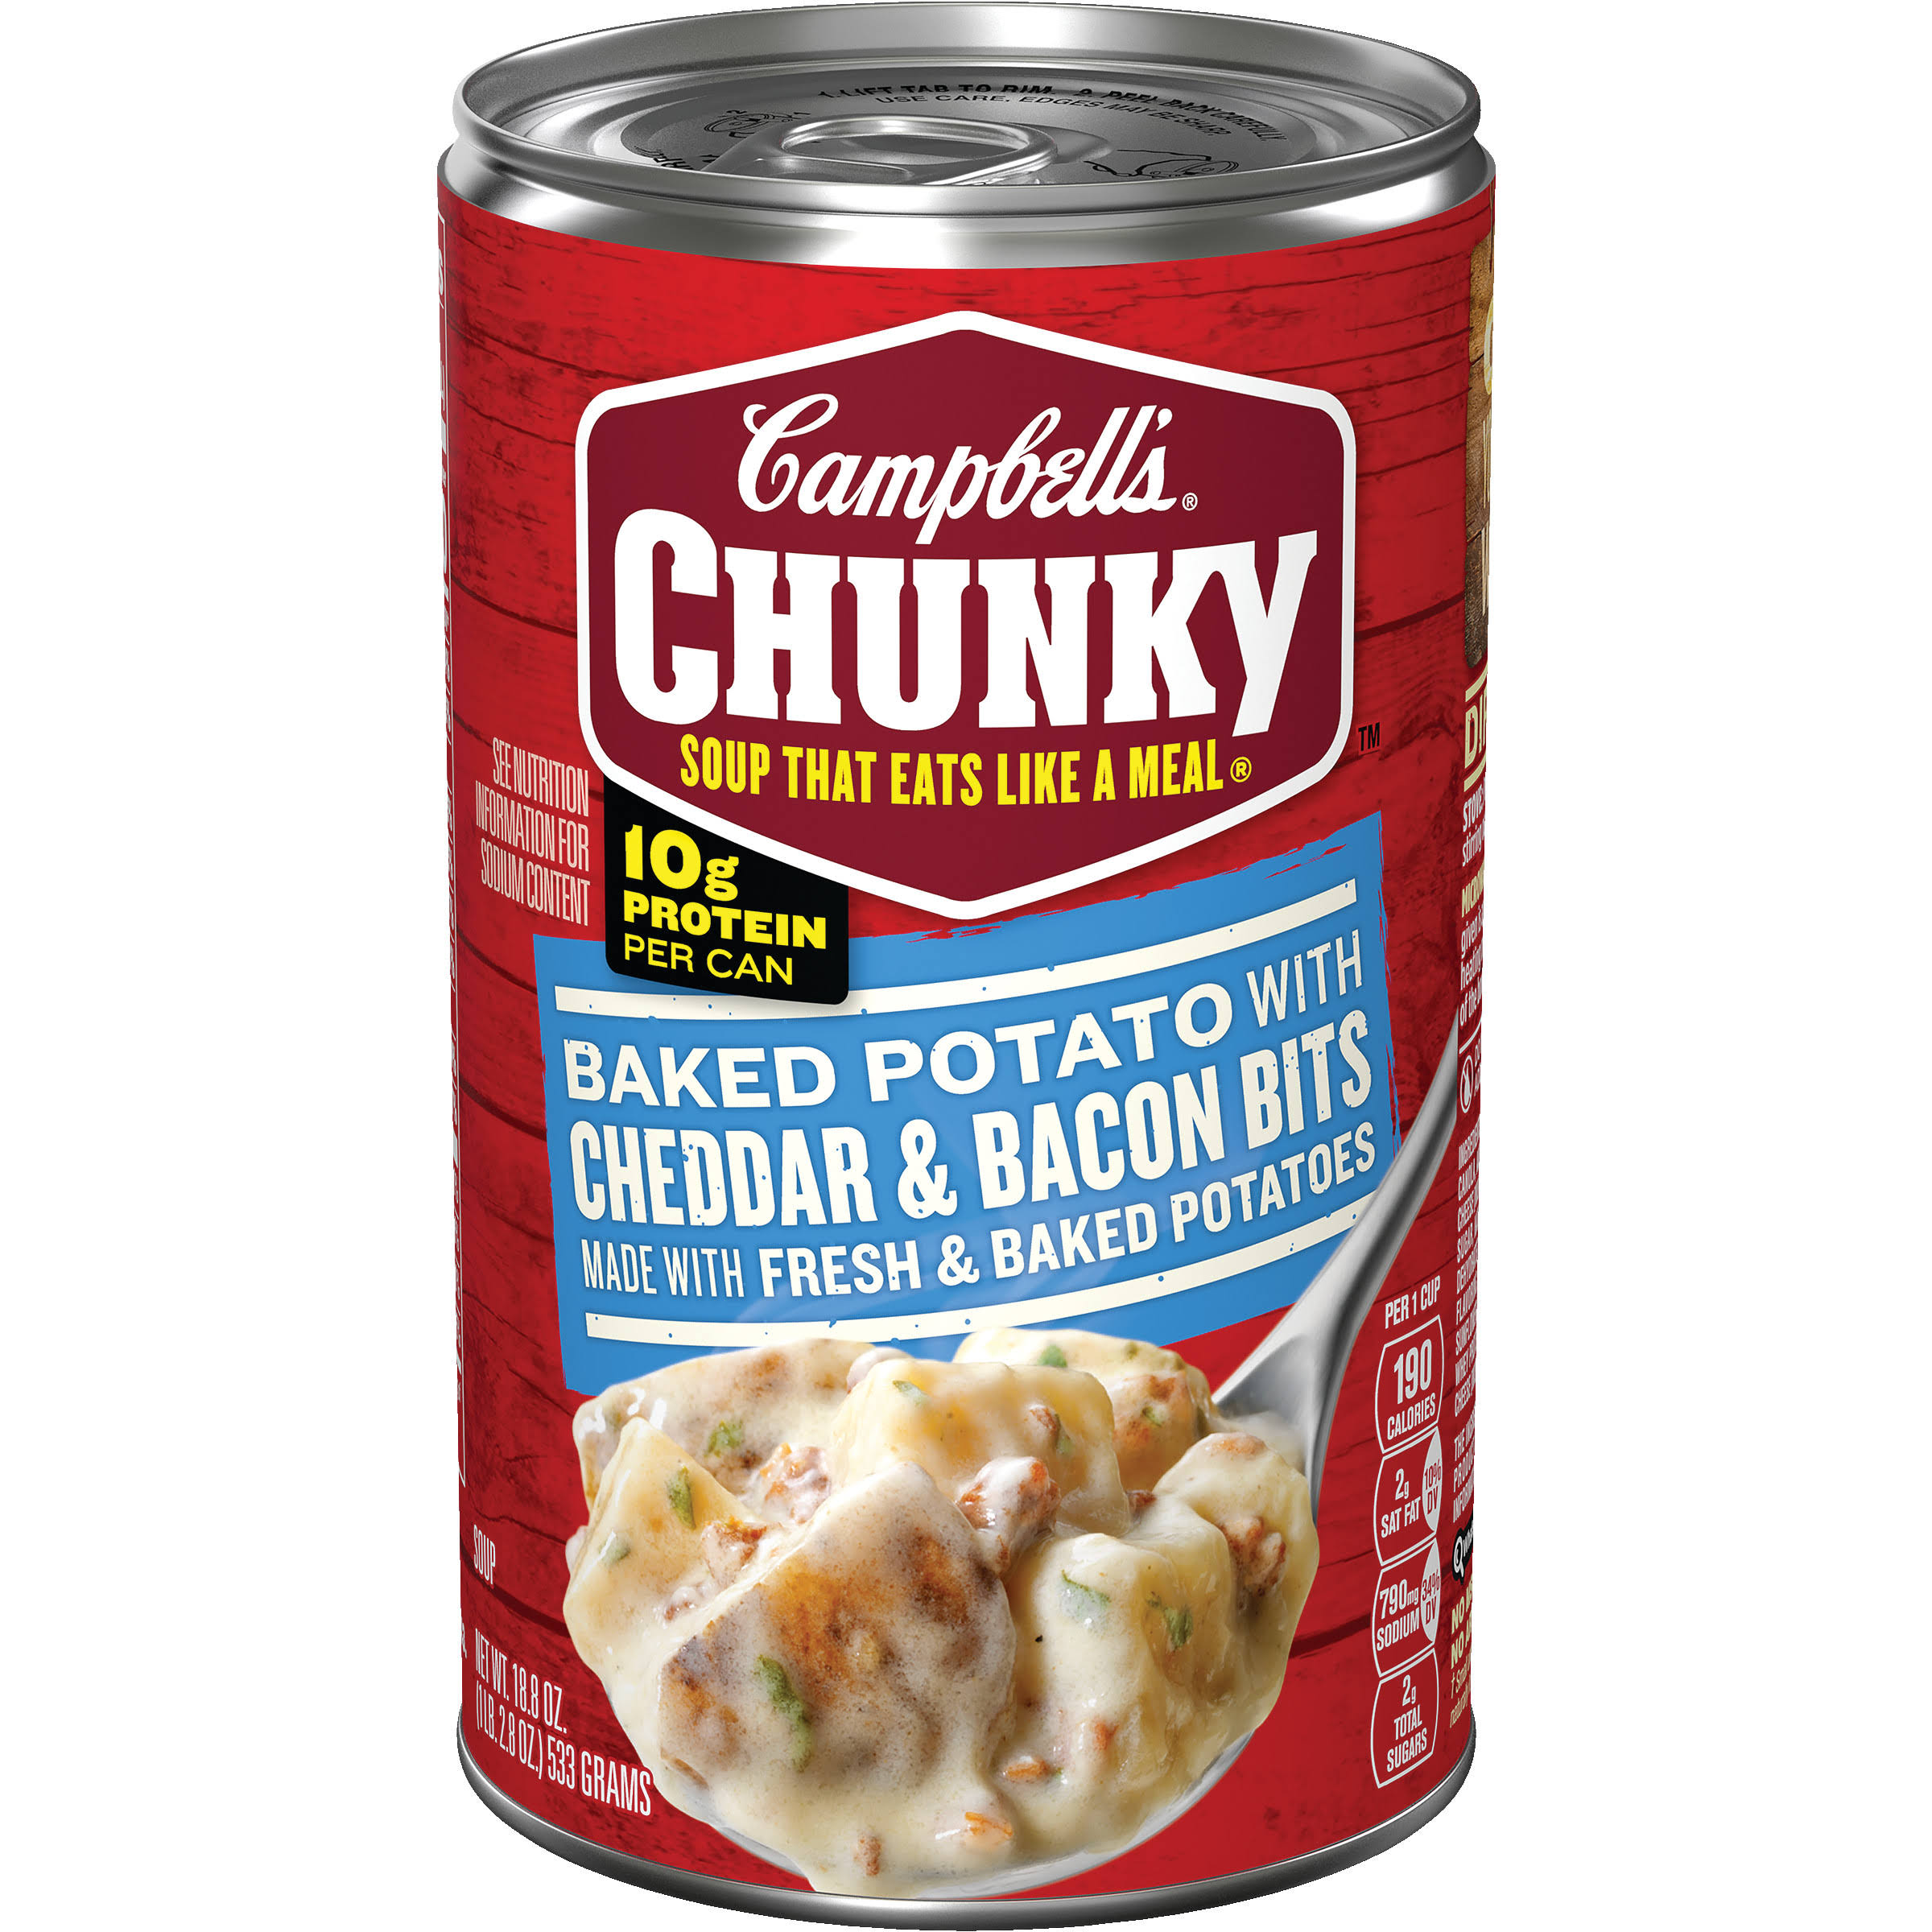 Campbell's Chunky Baked Potato with Cheddar & Bacon Bits Soup - 18.8oz